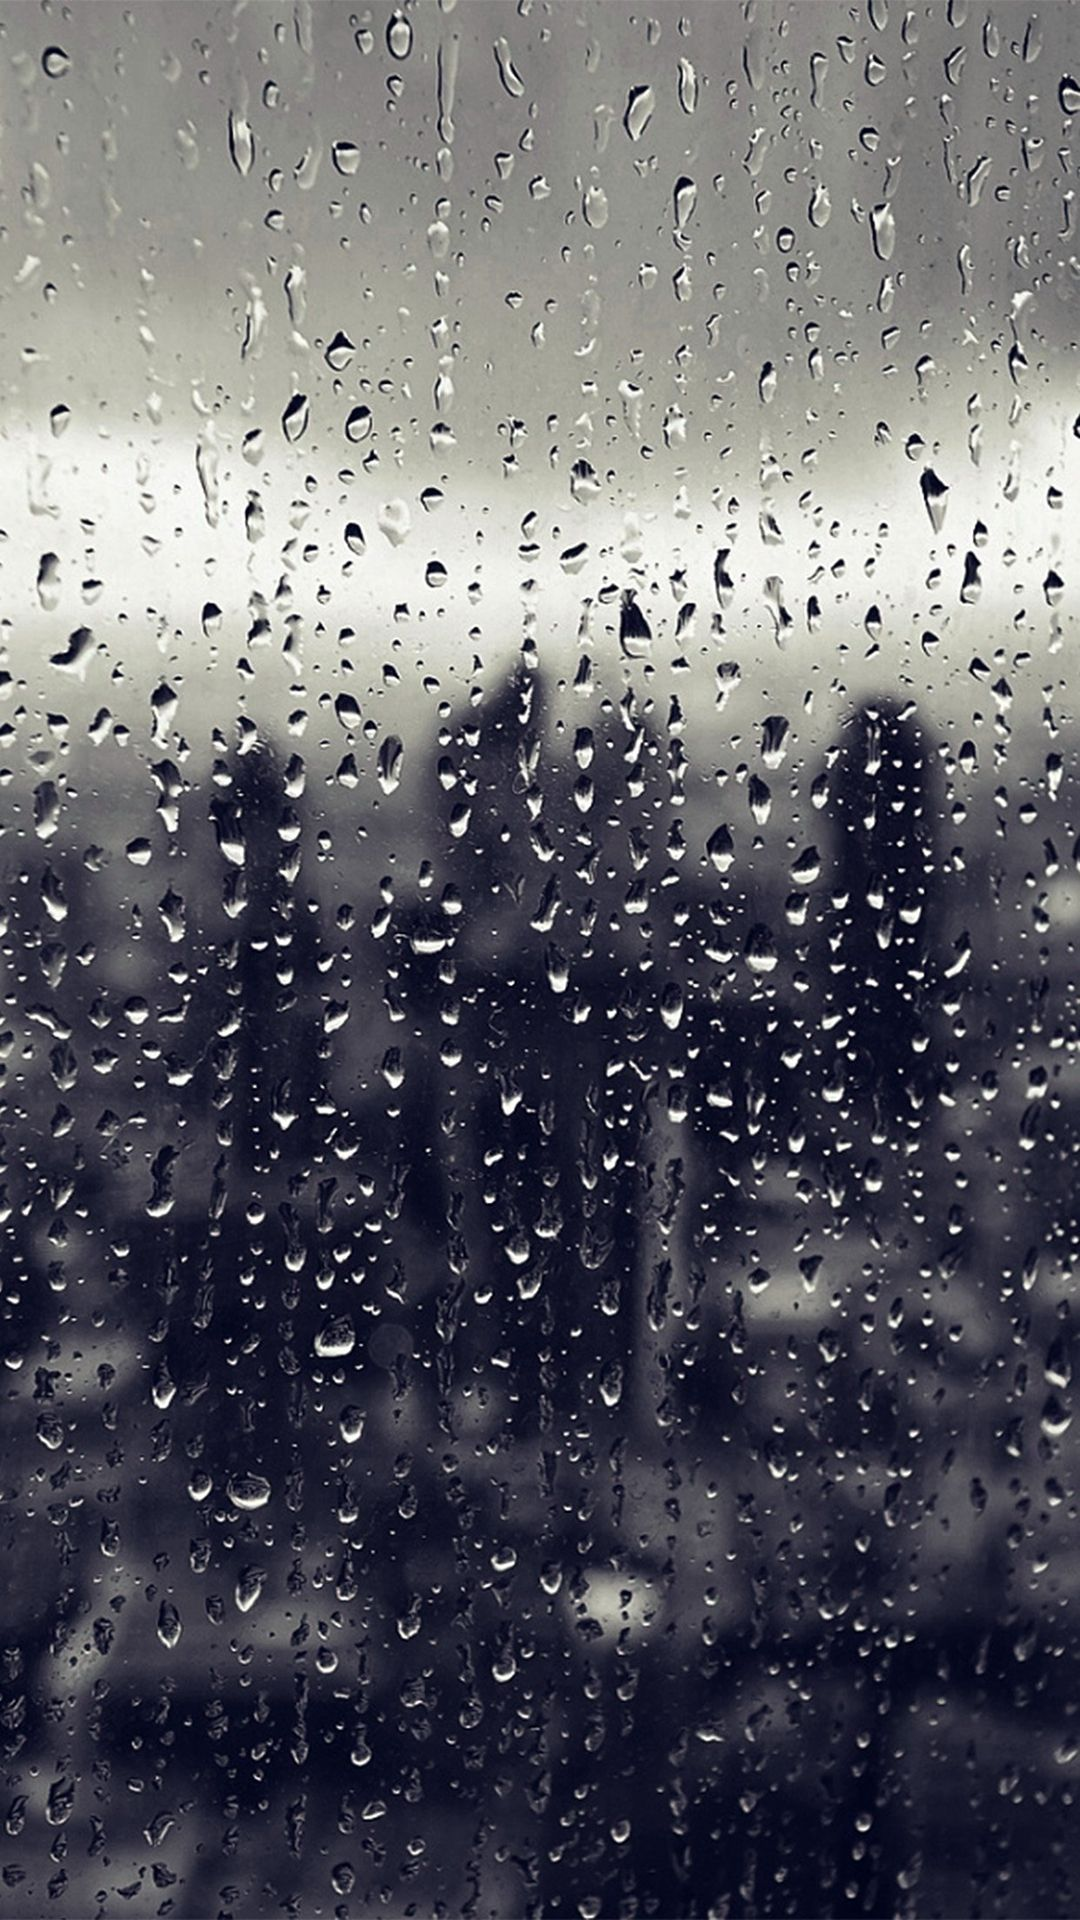 rain window nature pattern blue iphone 6 wallpaper iphone 6